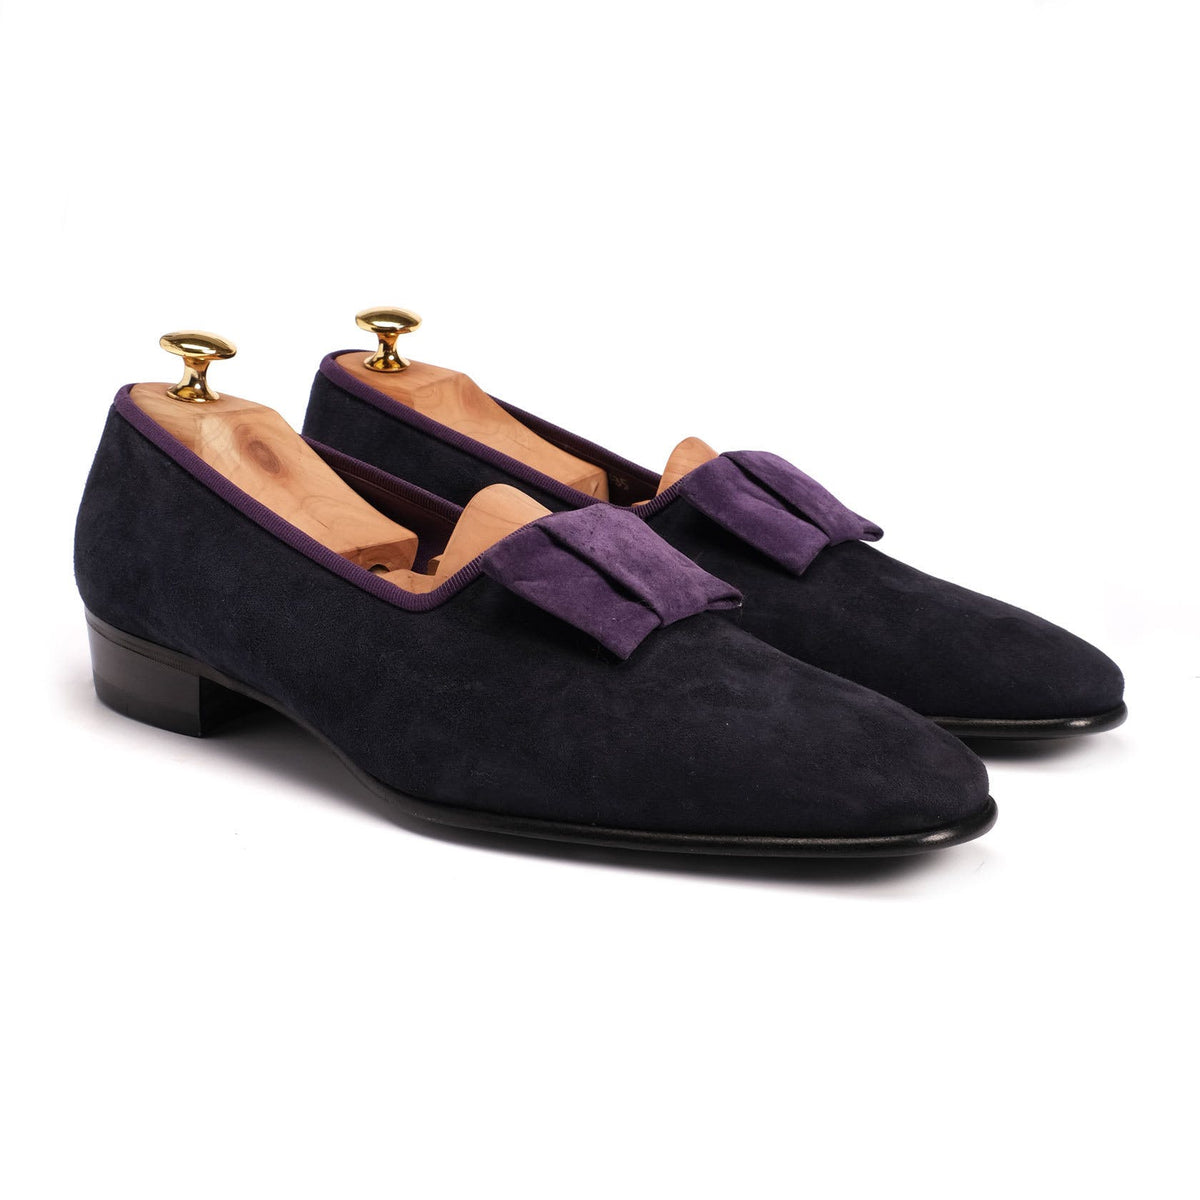 Evening Slipper - Suede